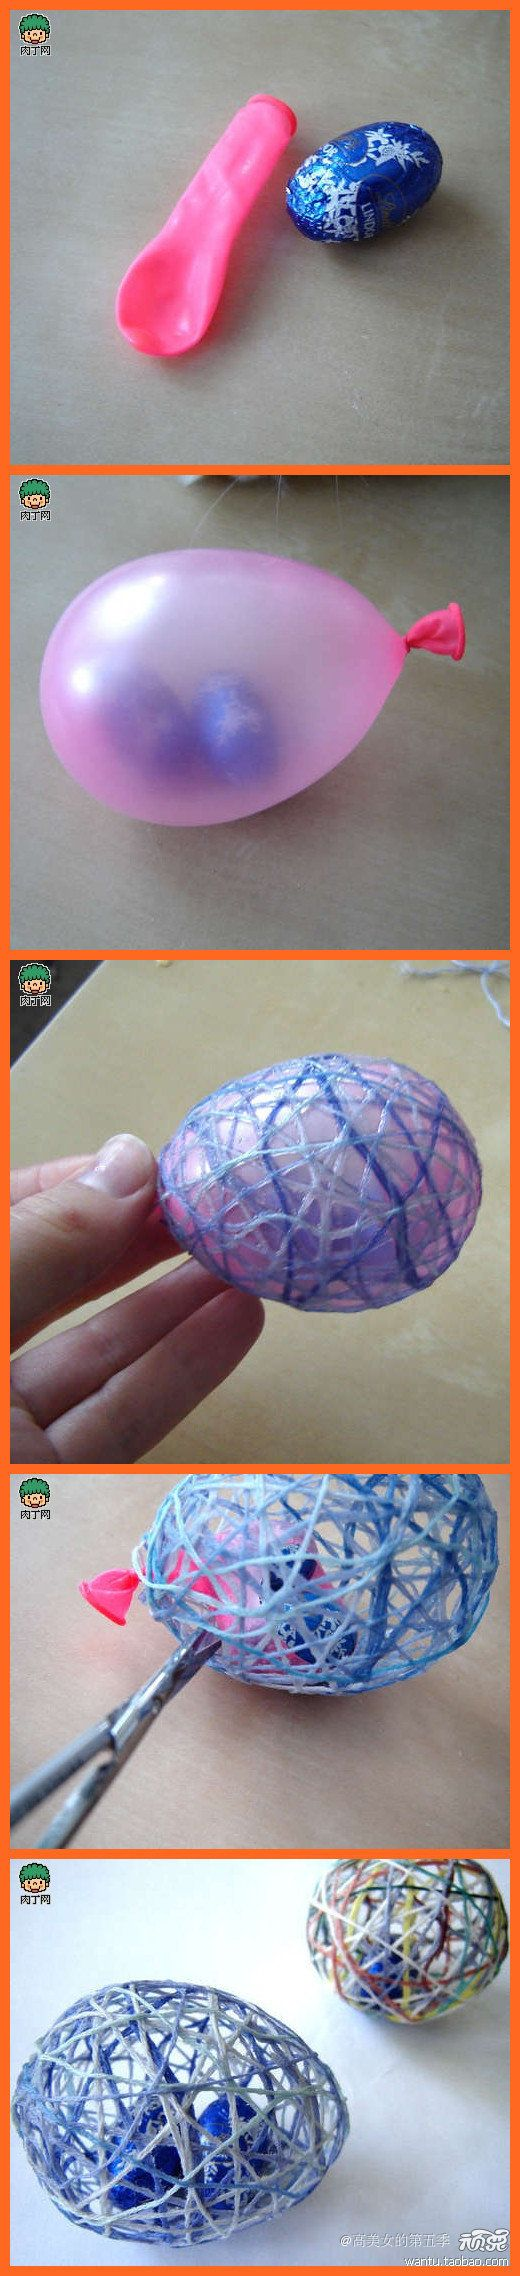 Cute Easter Idea: DIY Mod Podge and Yarn Easter Egg Craft